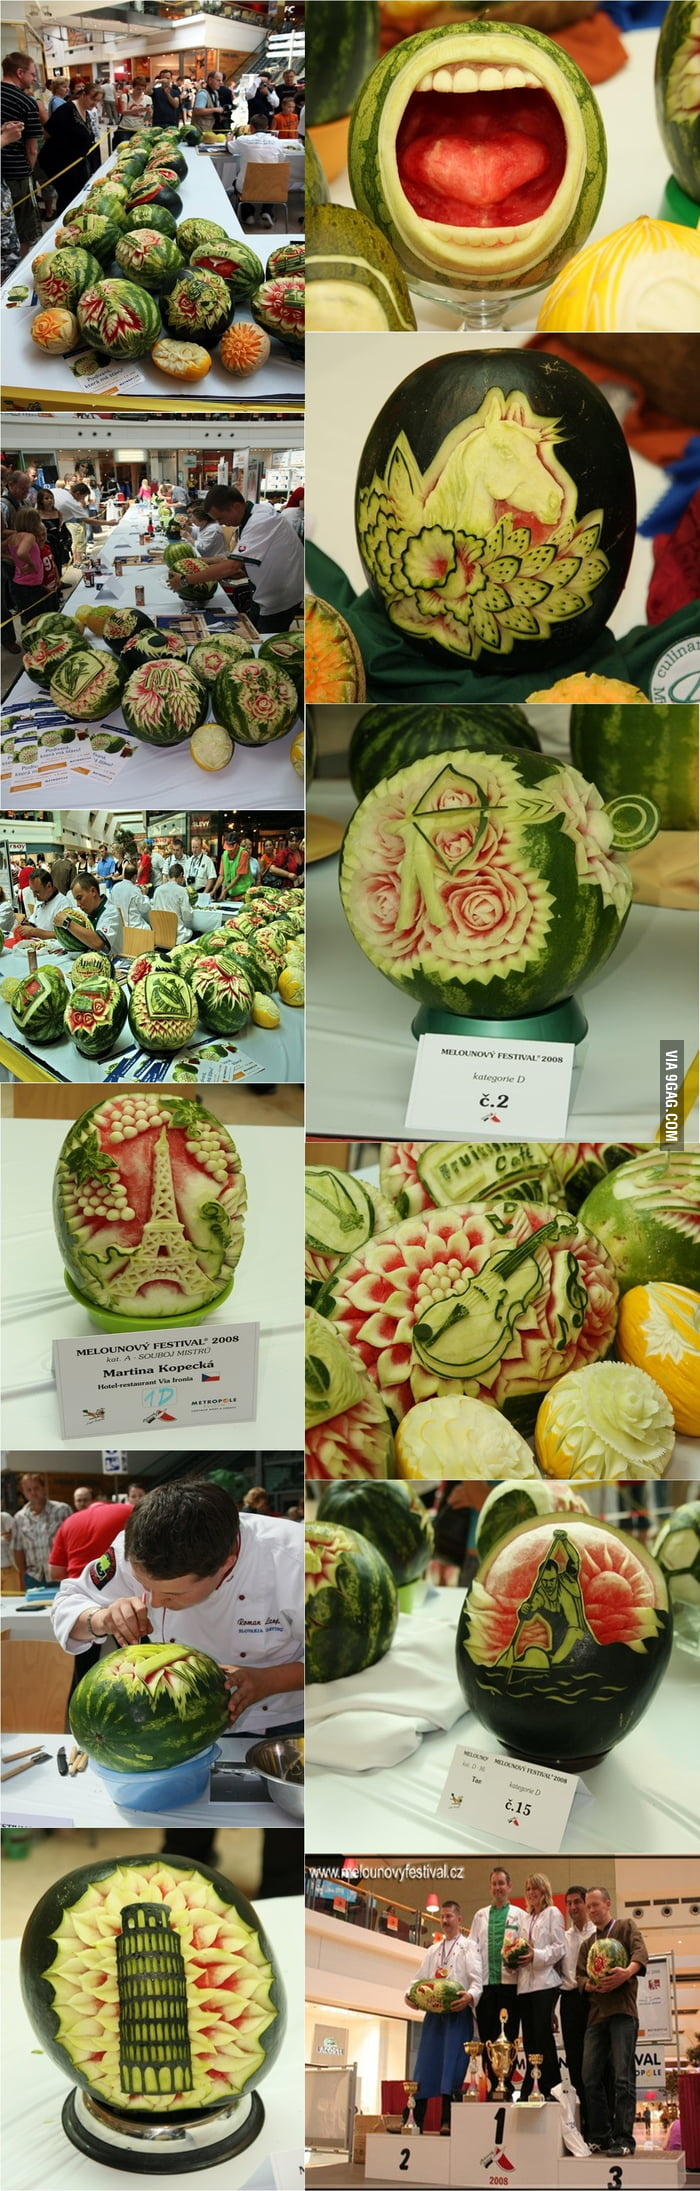 Art of watermelons